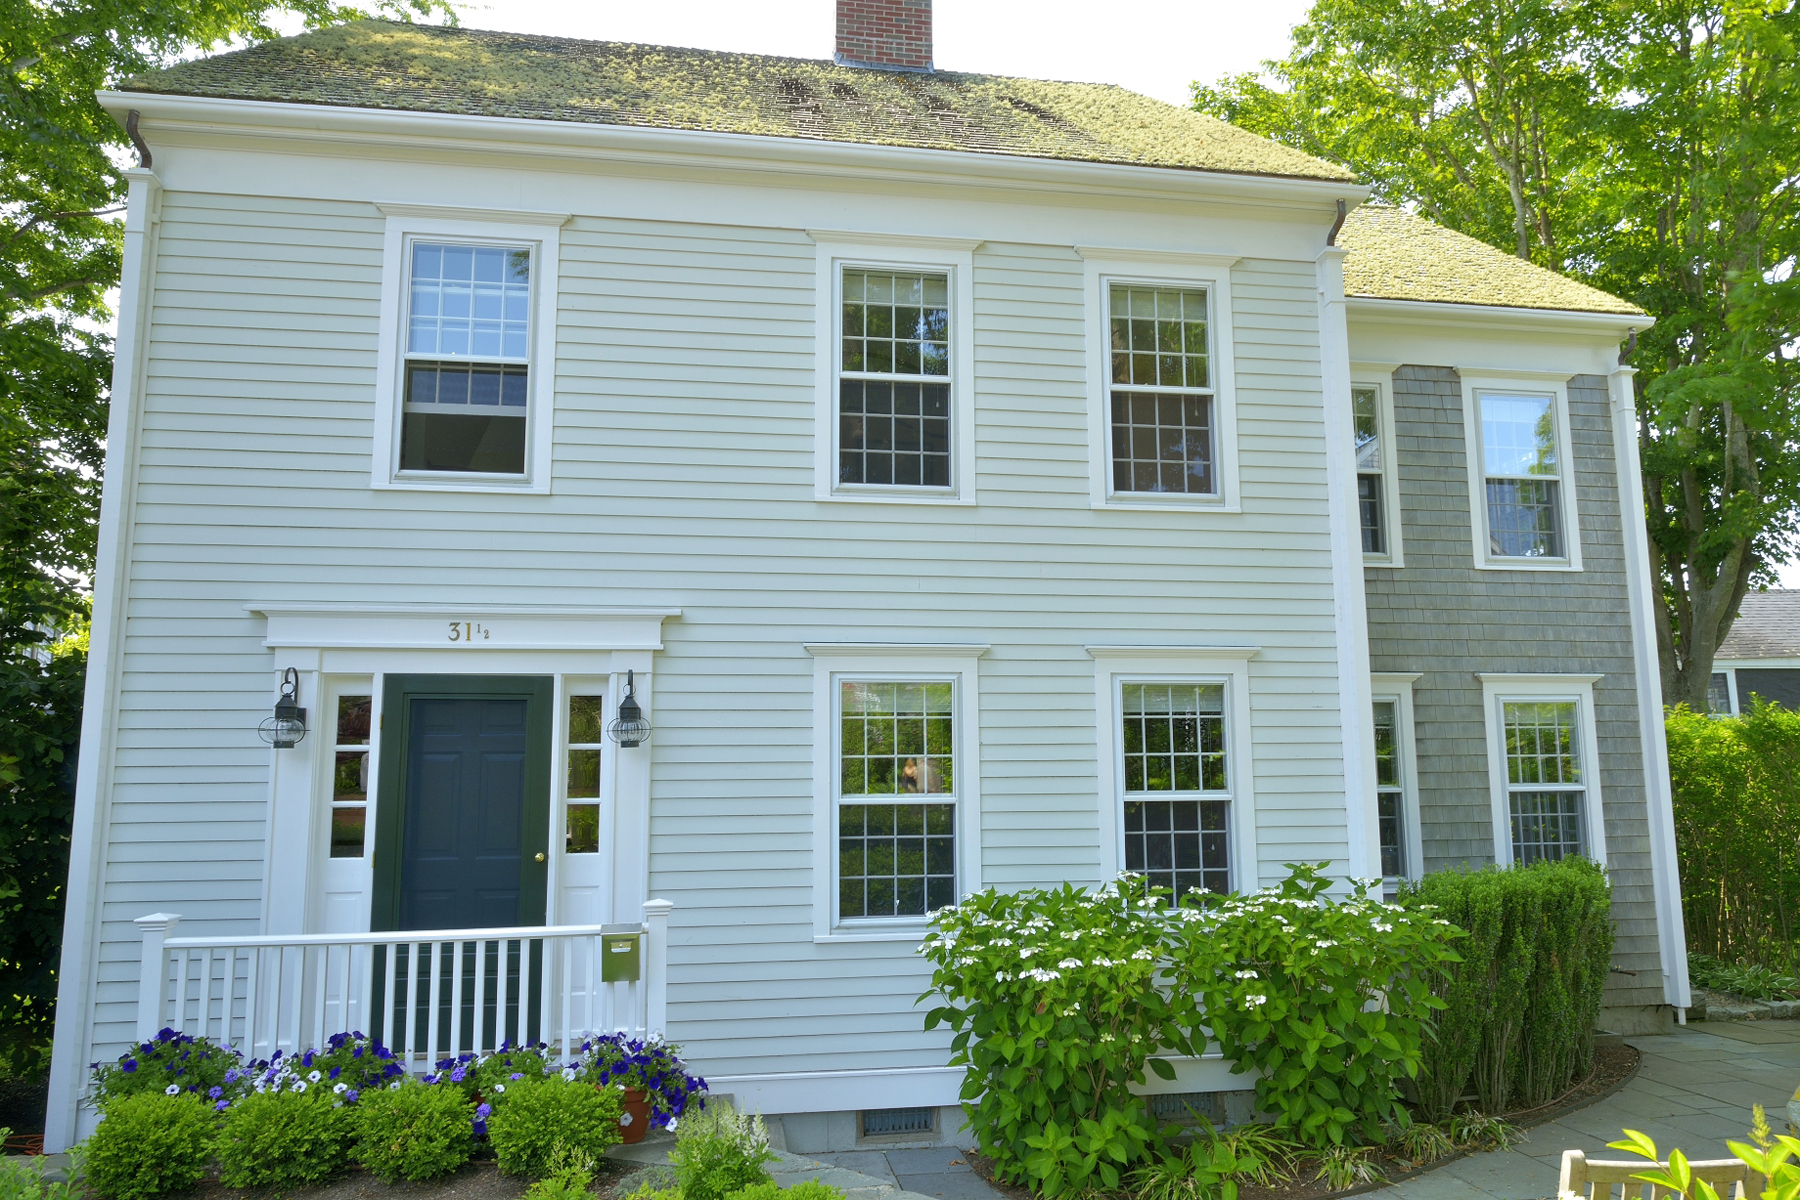 Single Family Home for Sale at In Town Gem 31.5 Hussey Street Nantucket, Massachusetts 02554 United States